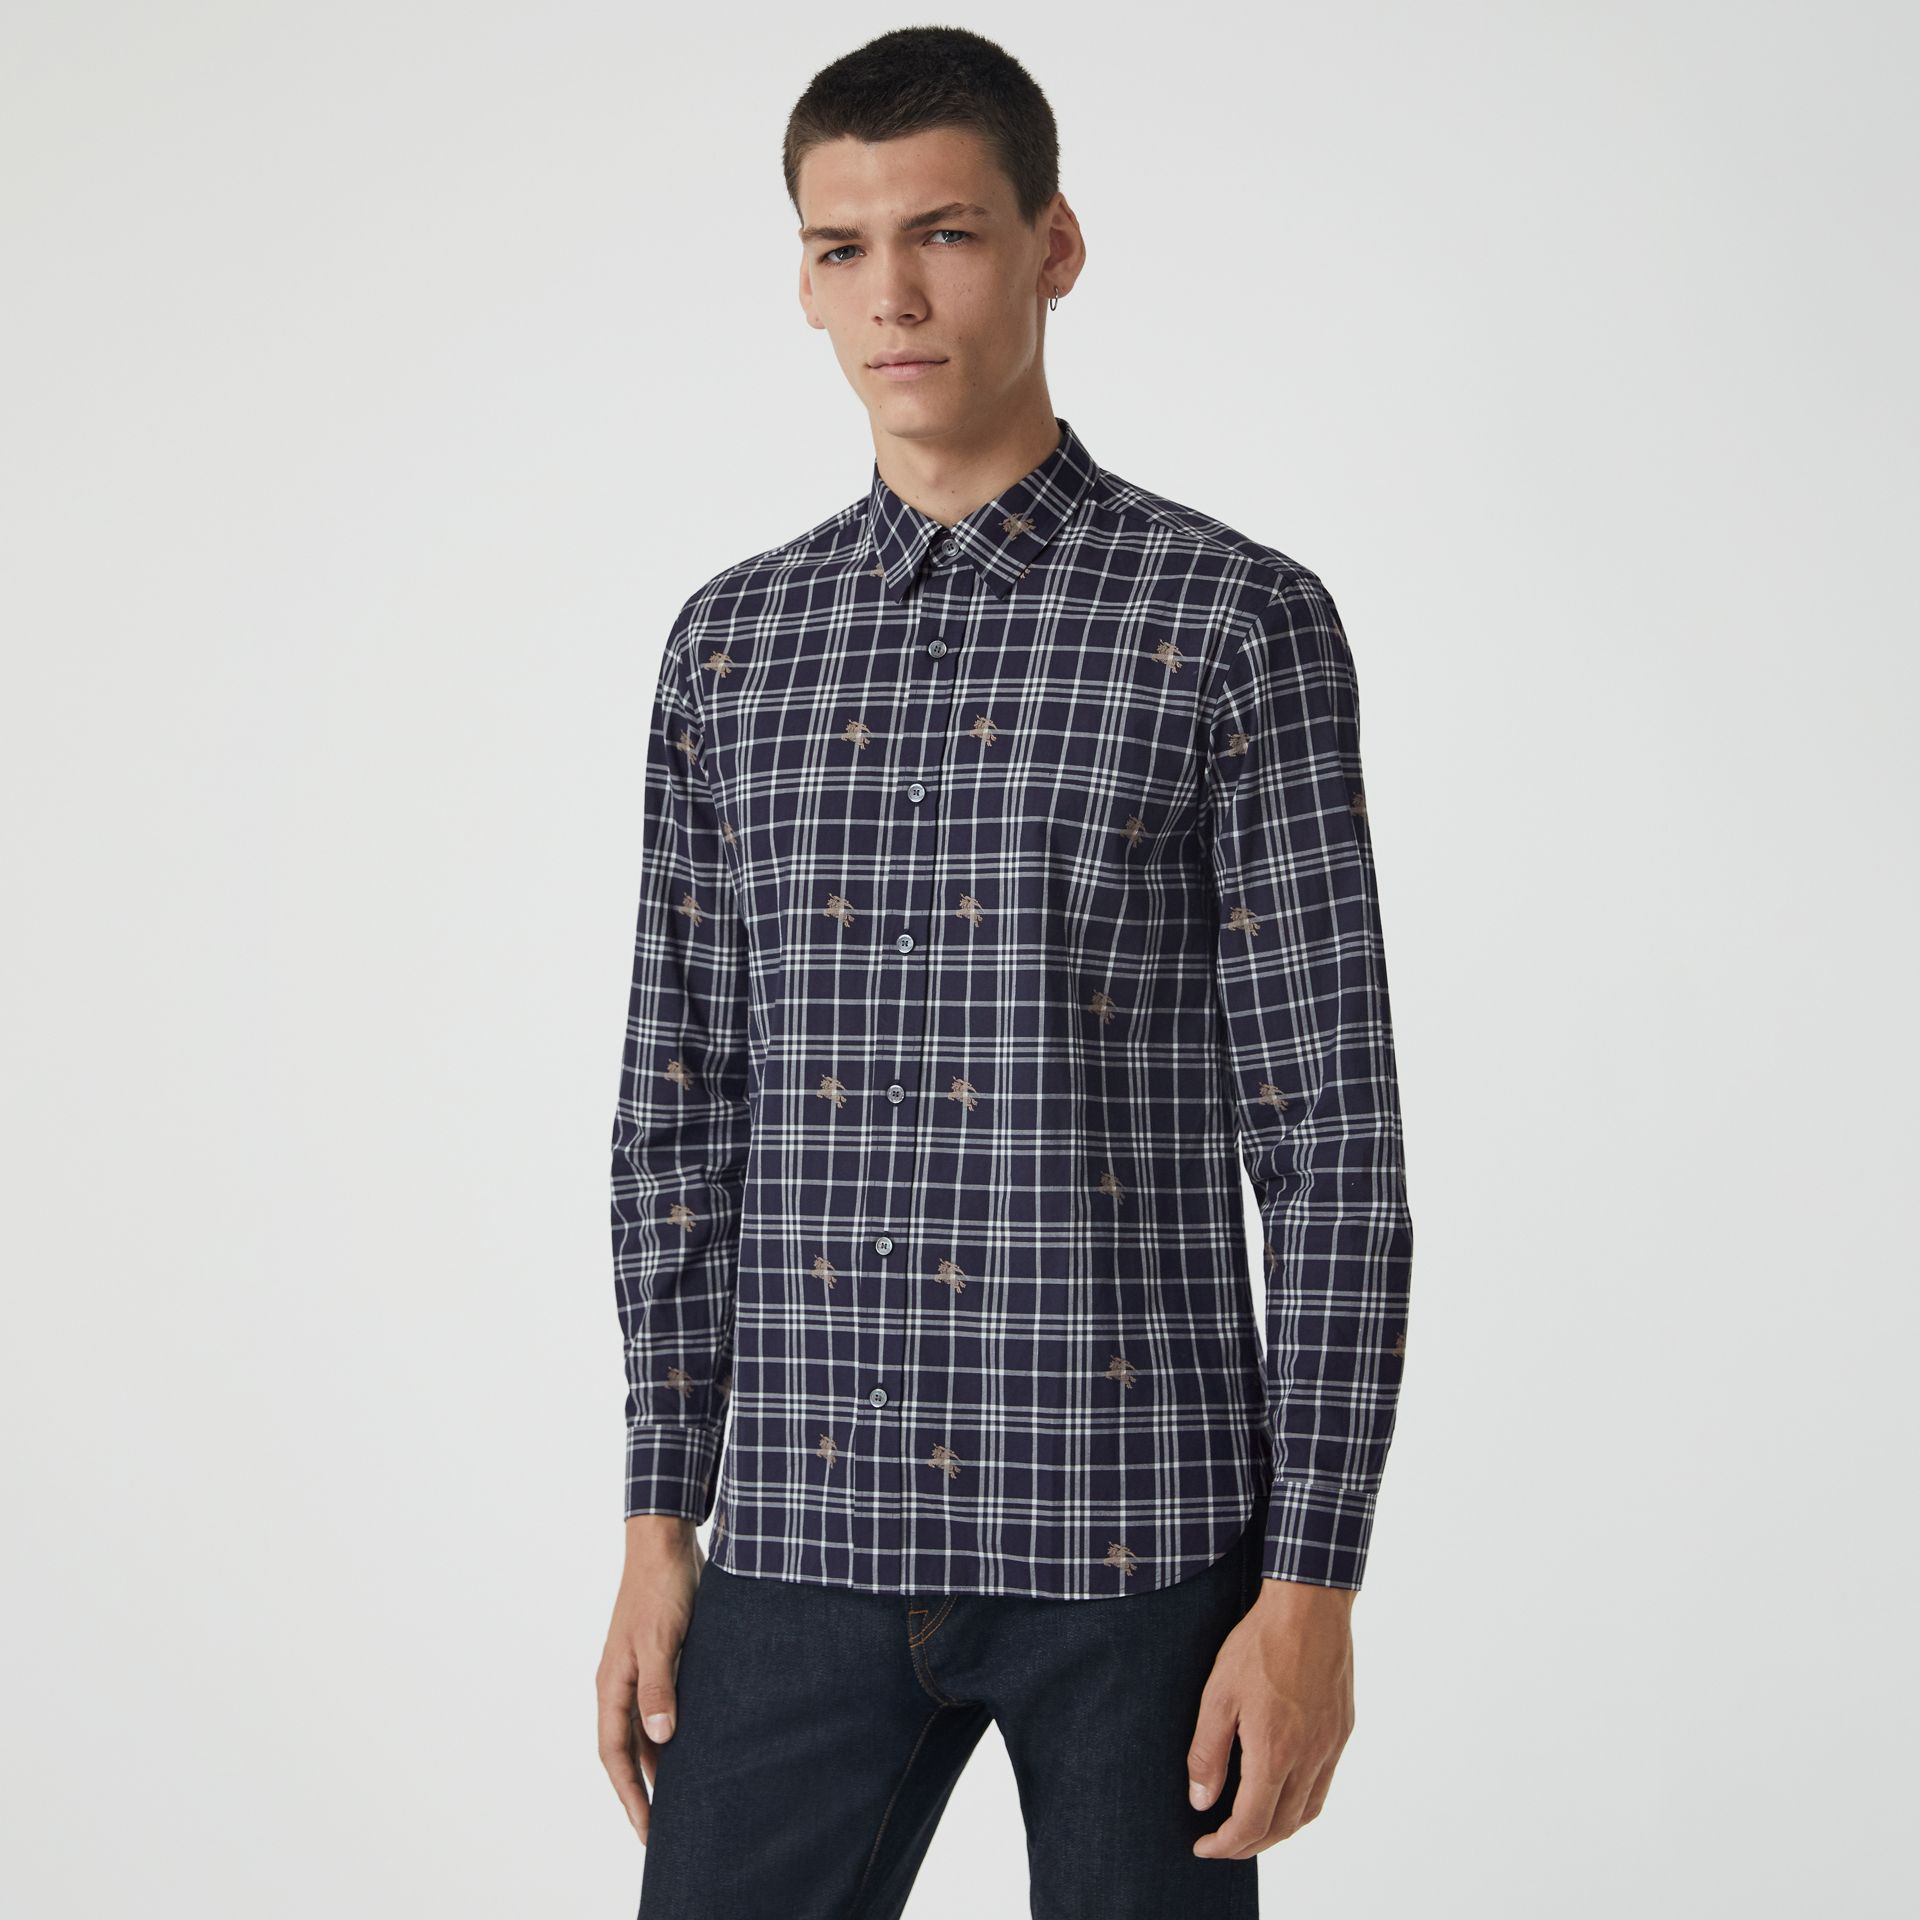 Equestrian Knight Check Cotton Shirt in Navy - Men | Burberry Canada - gallery image 0